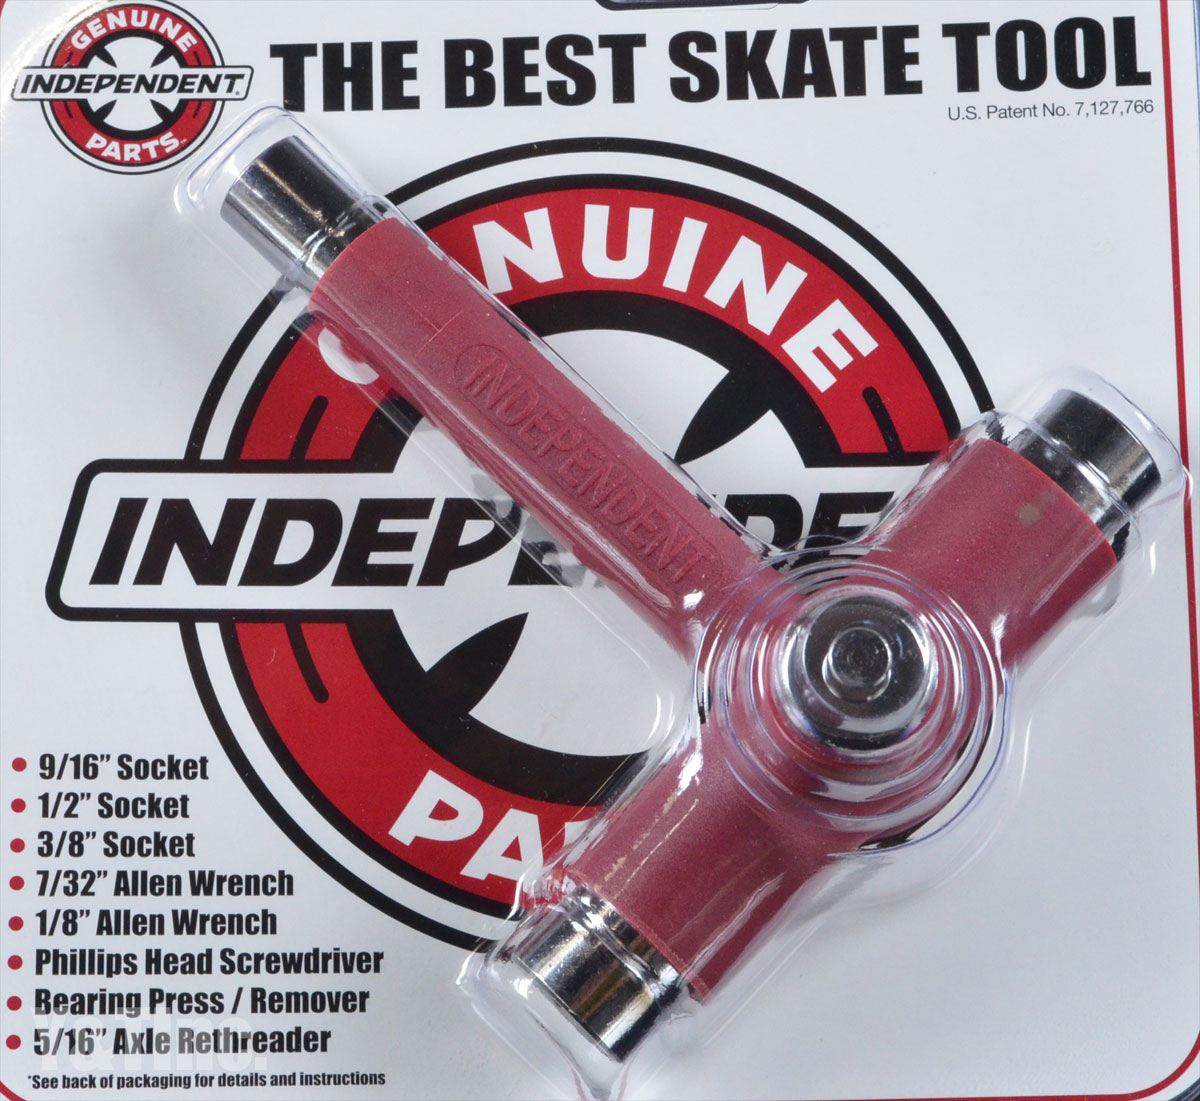 INDEPENDENT BEST SKATE TOOL RED 1